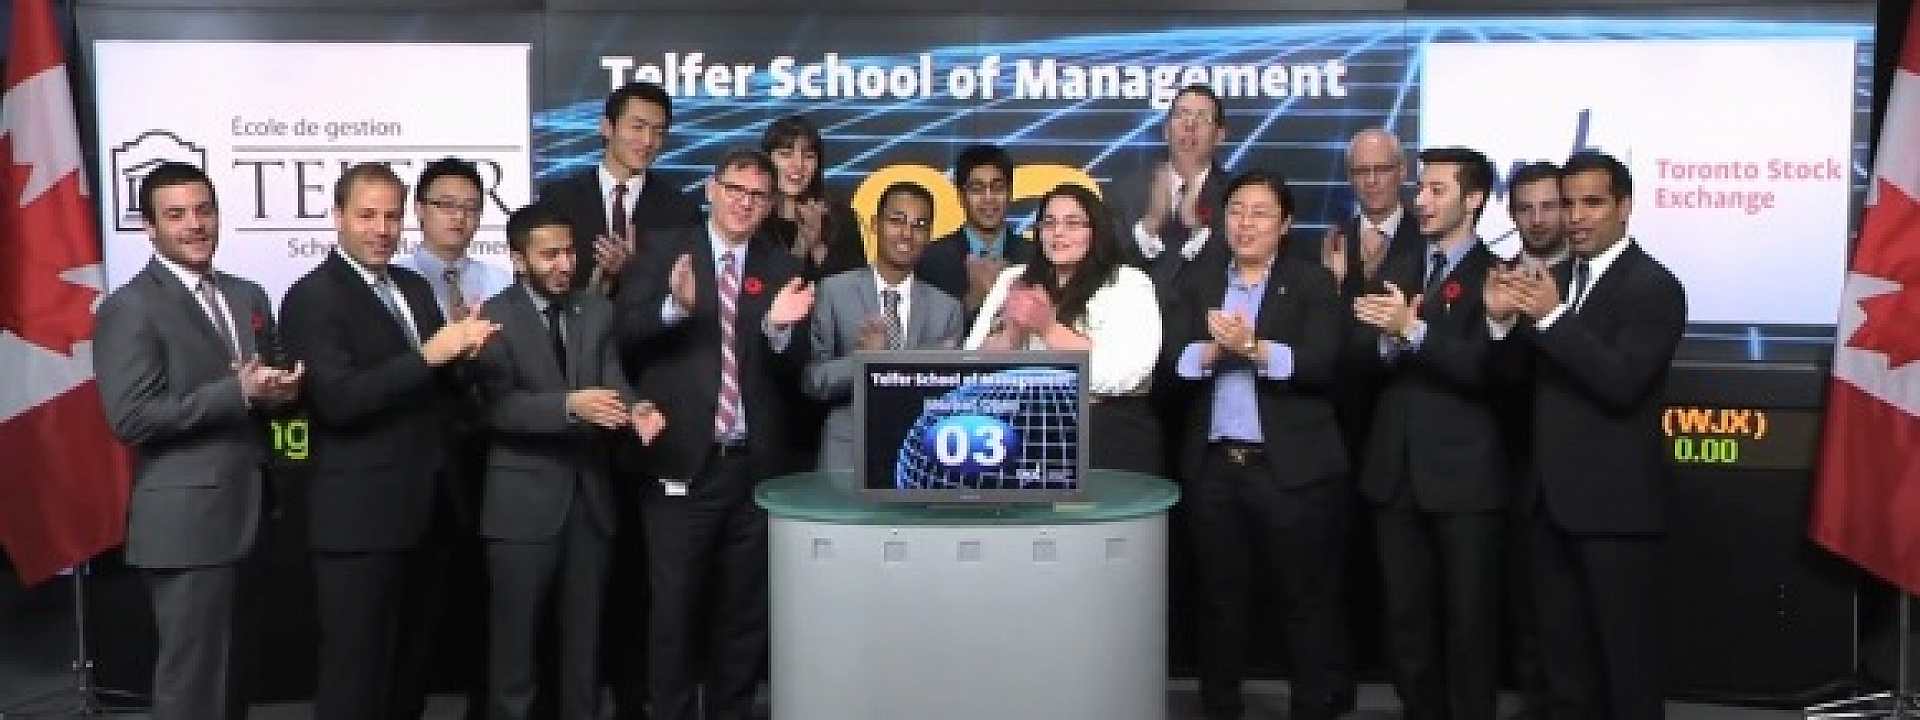 Telfer School students open the market in Toronto